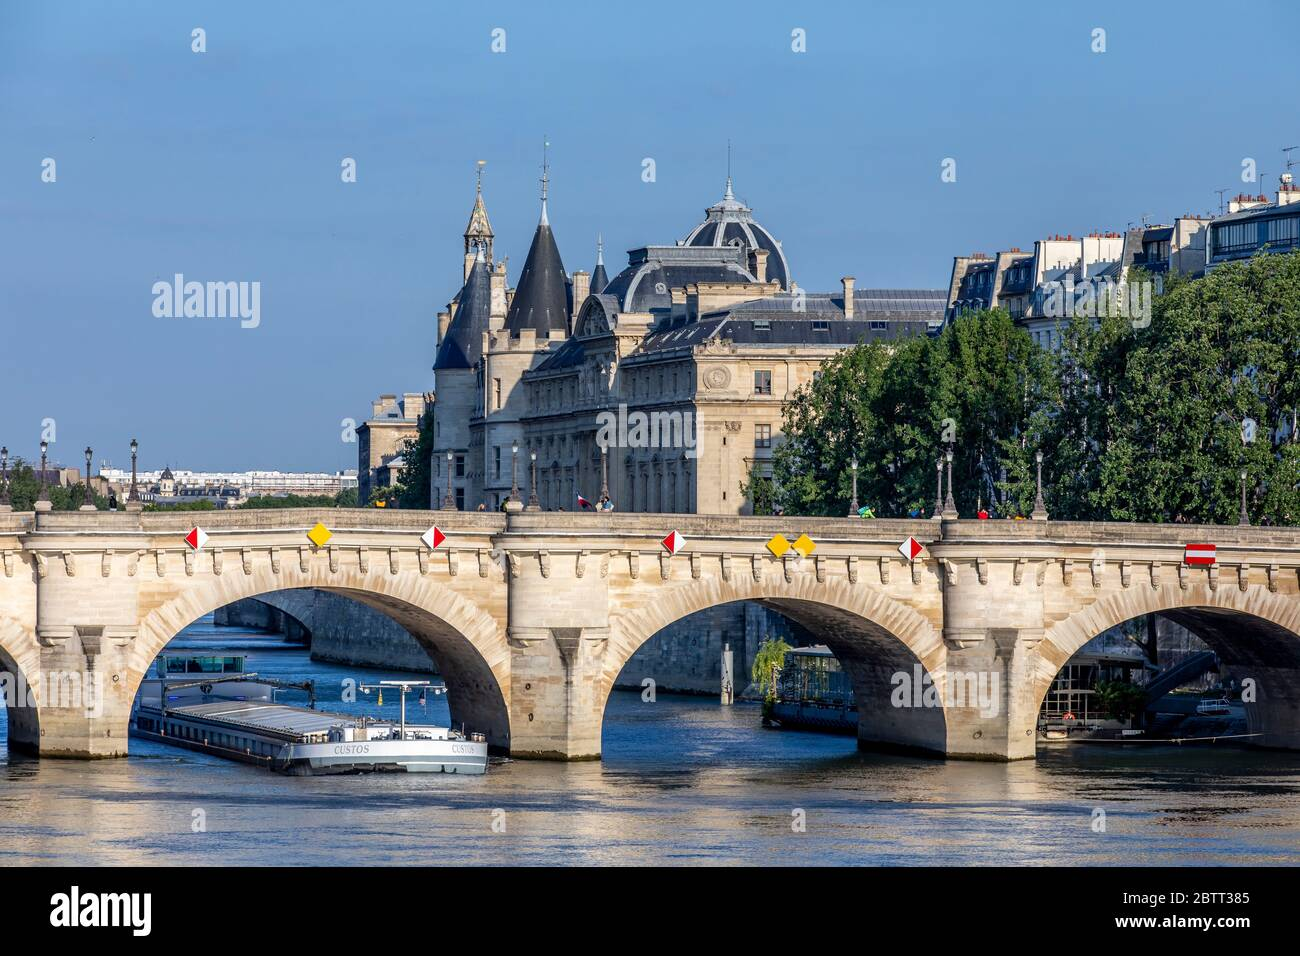 Paris, France - May 14, 2020: View of Pont neuf bridge, oldest bridge in Paris and Conciergerie in background Stock Photo